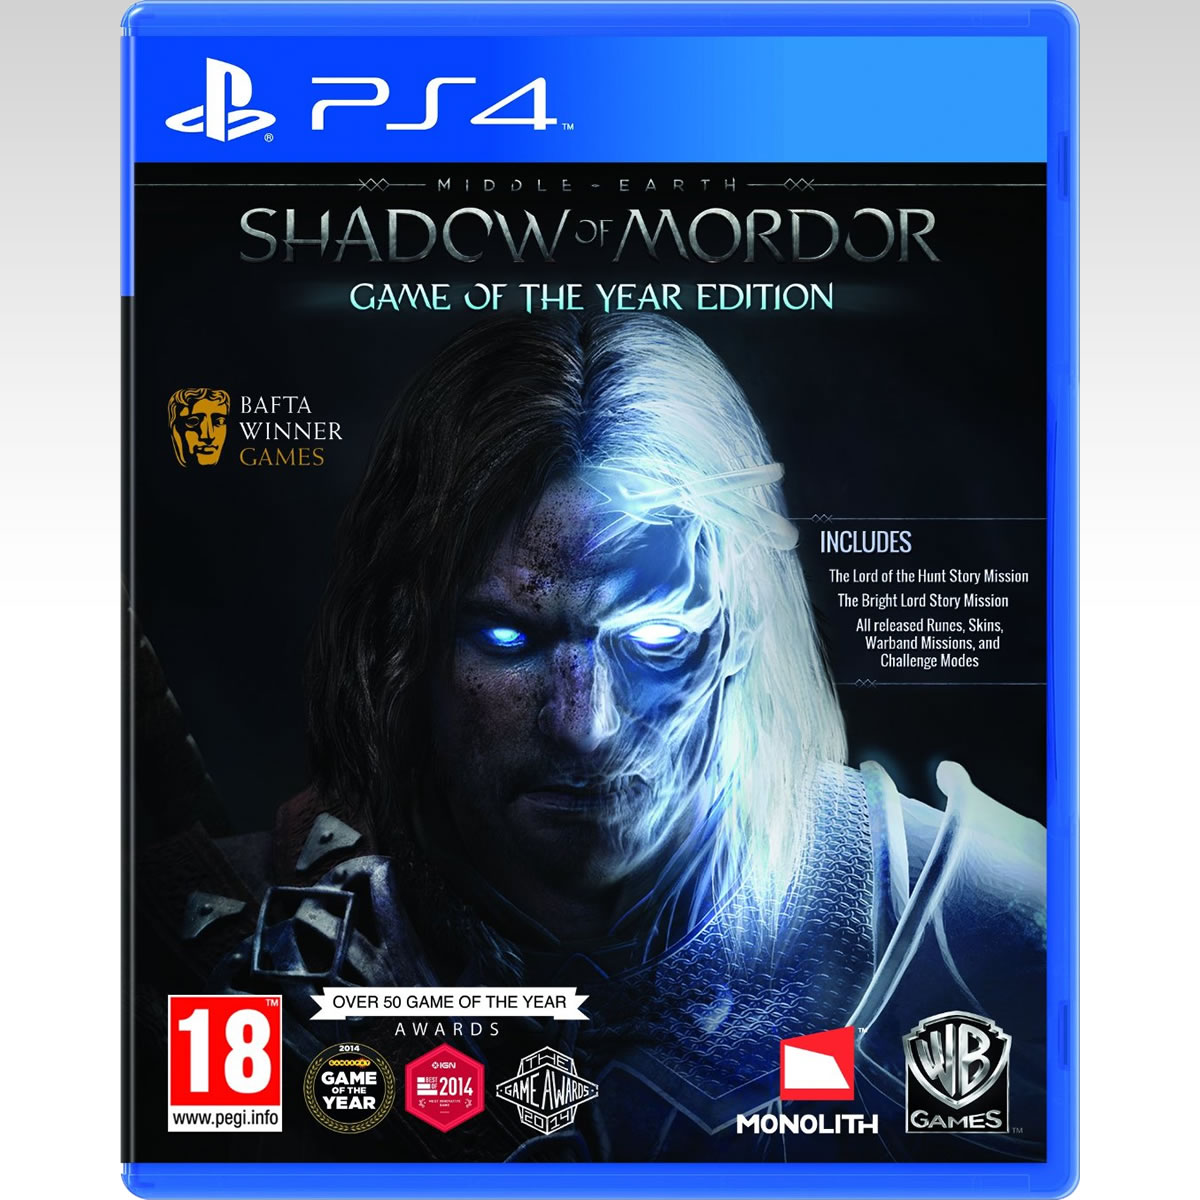 MIDDLE EARTH: SHADOW OR MORDOR - GAME OF THE YEAR EDITION (PS4)